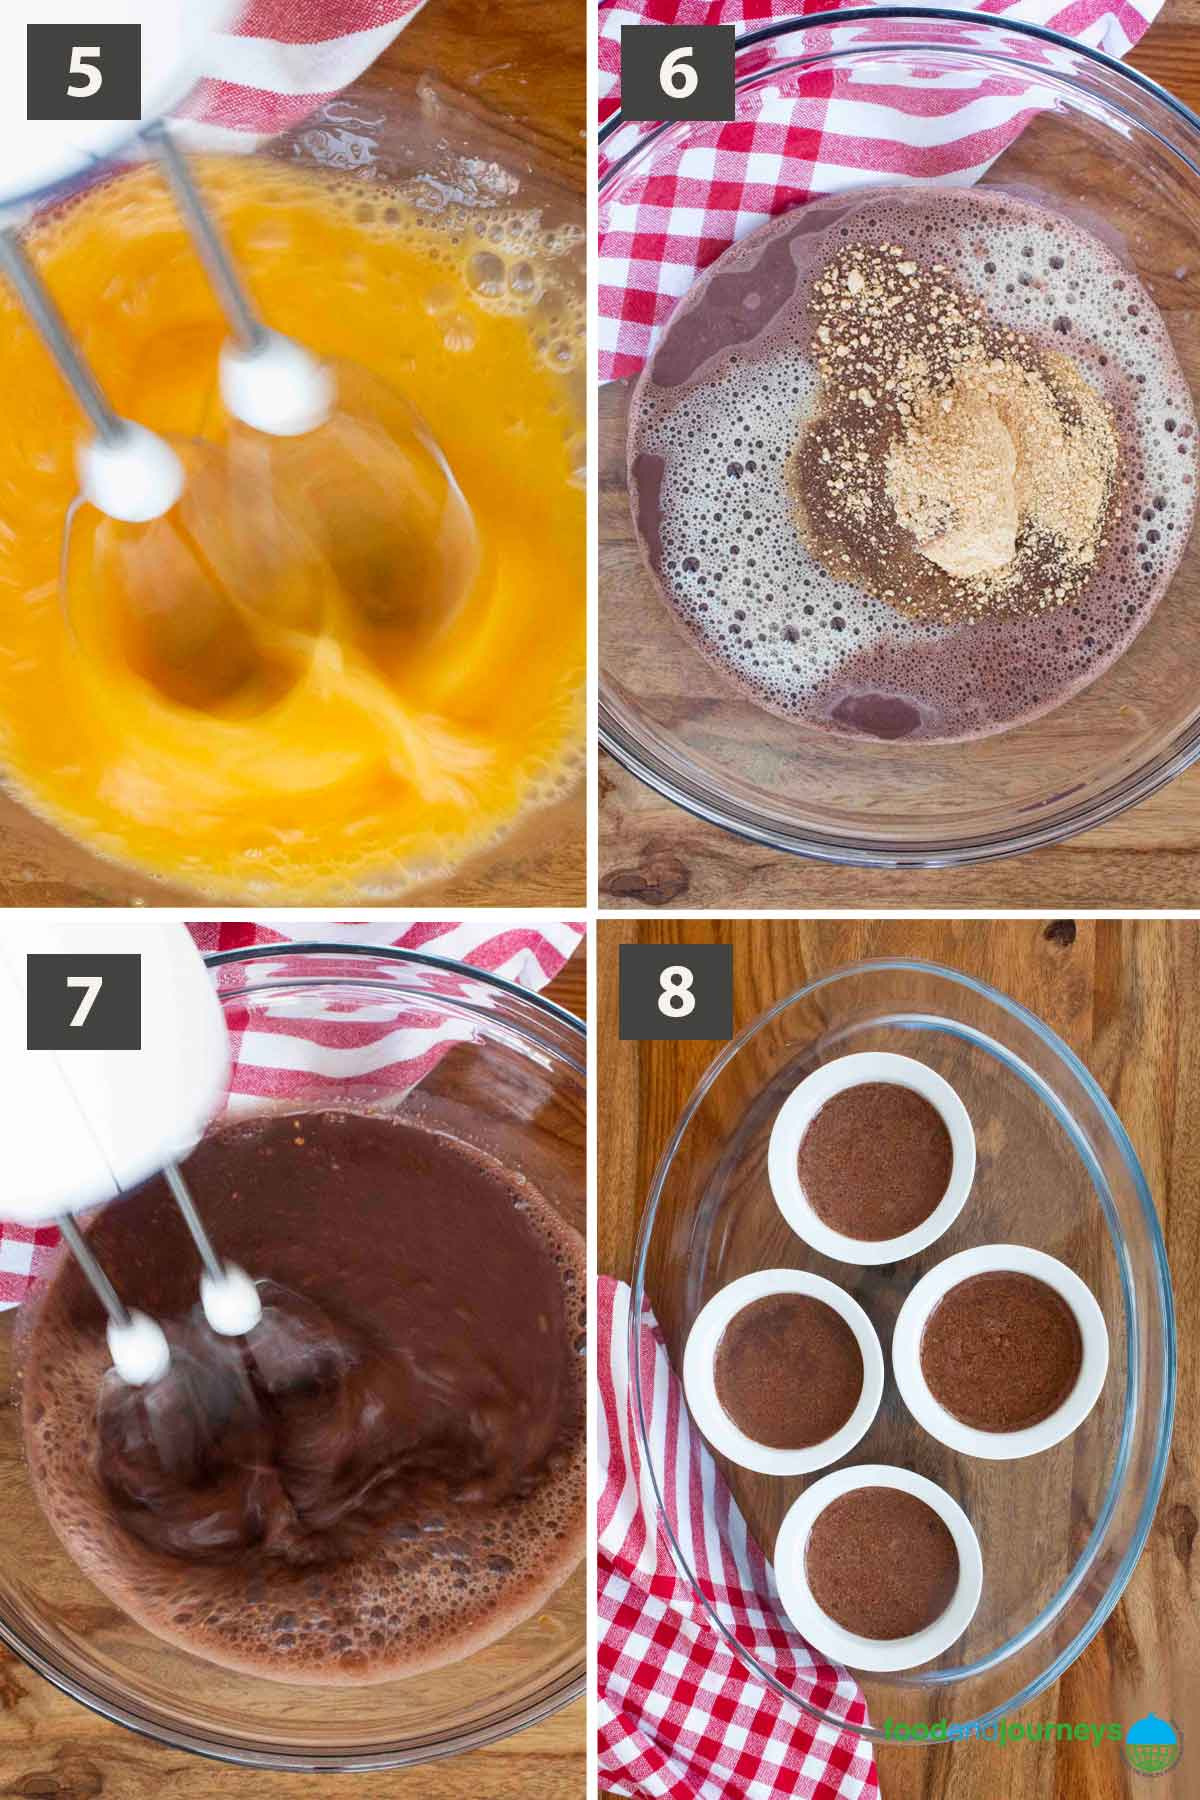 Last part of a collage of images showing the step by step process on how to make Chocolate Bonet.